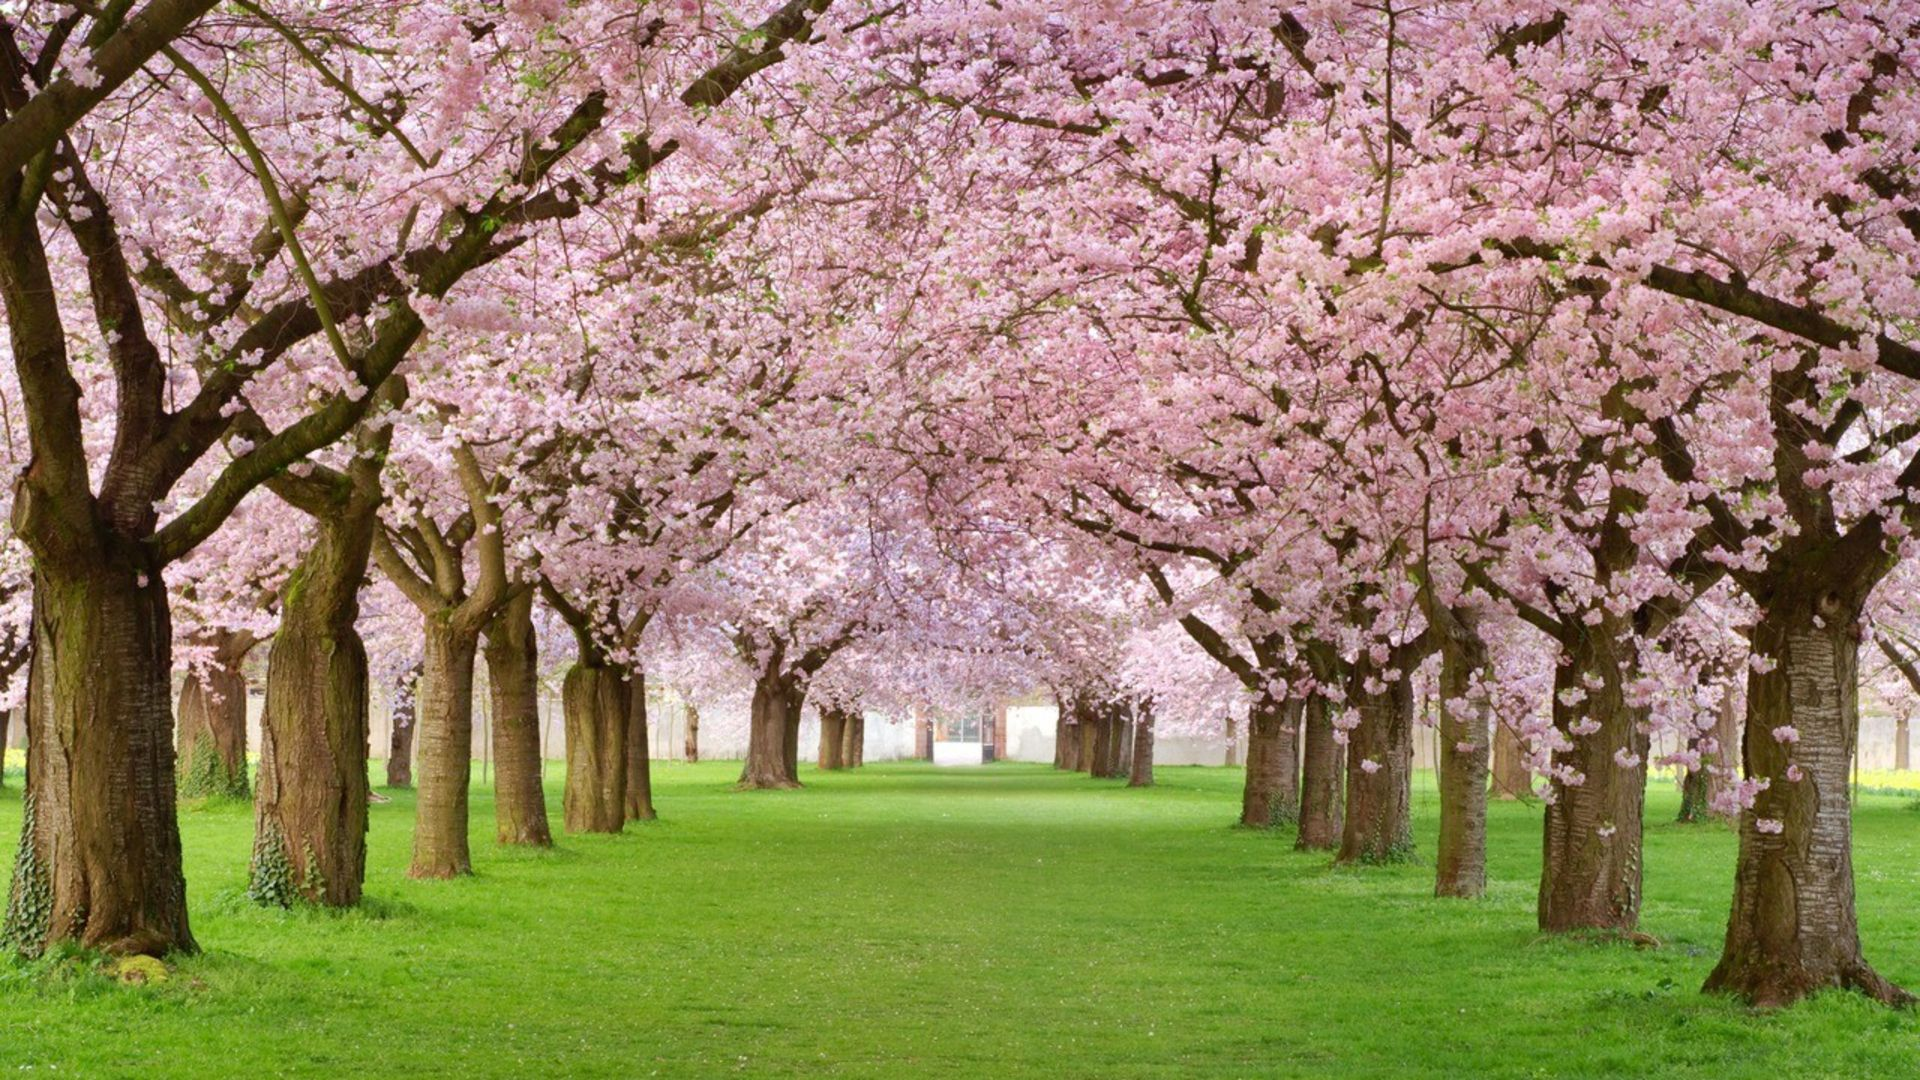 Beautiful Spring Images Download Wallpapers Backgrounds Images